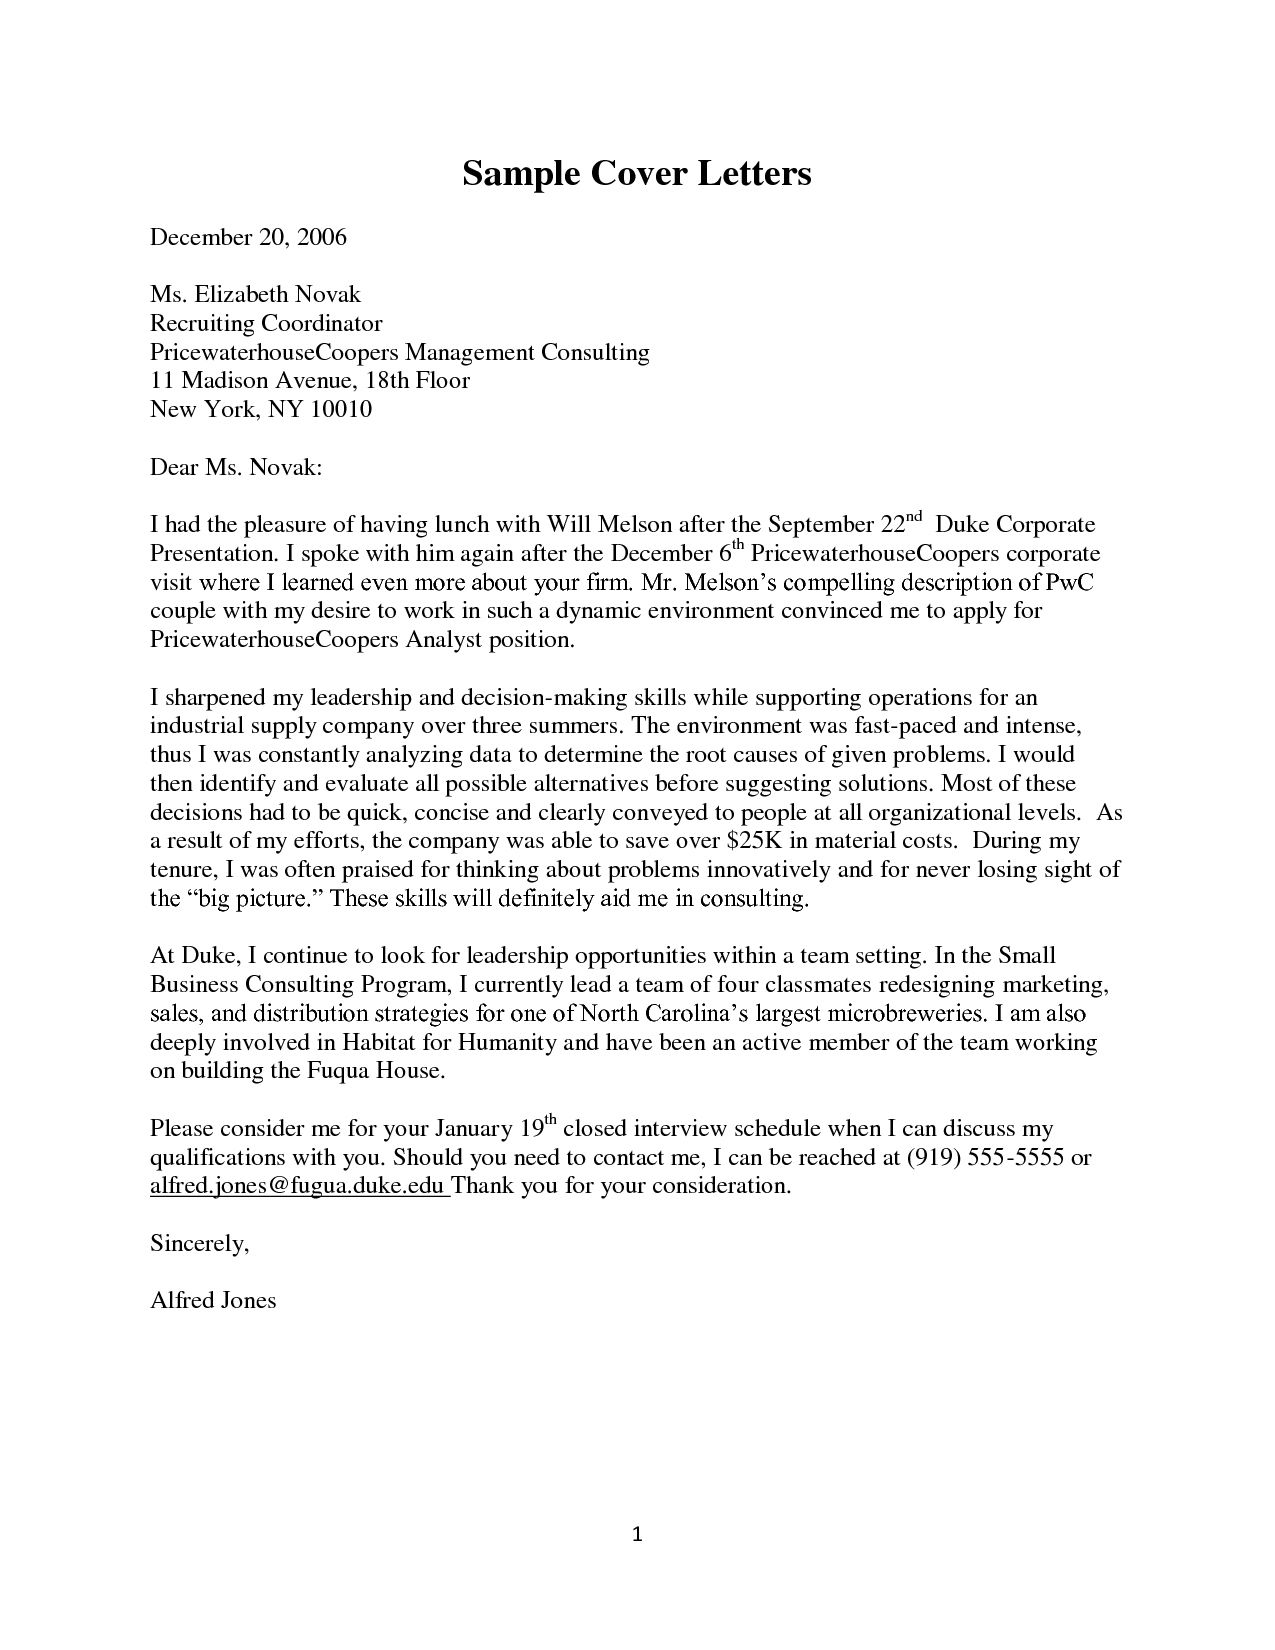 Amazon Appeal Letter Template - Cover Letter Consulting Pwc for Sale Amazon Free Shipping Guide and